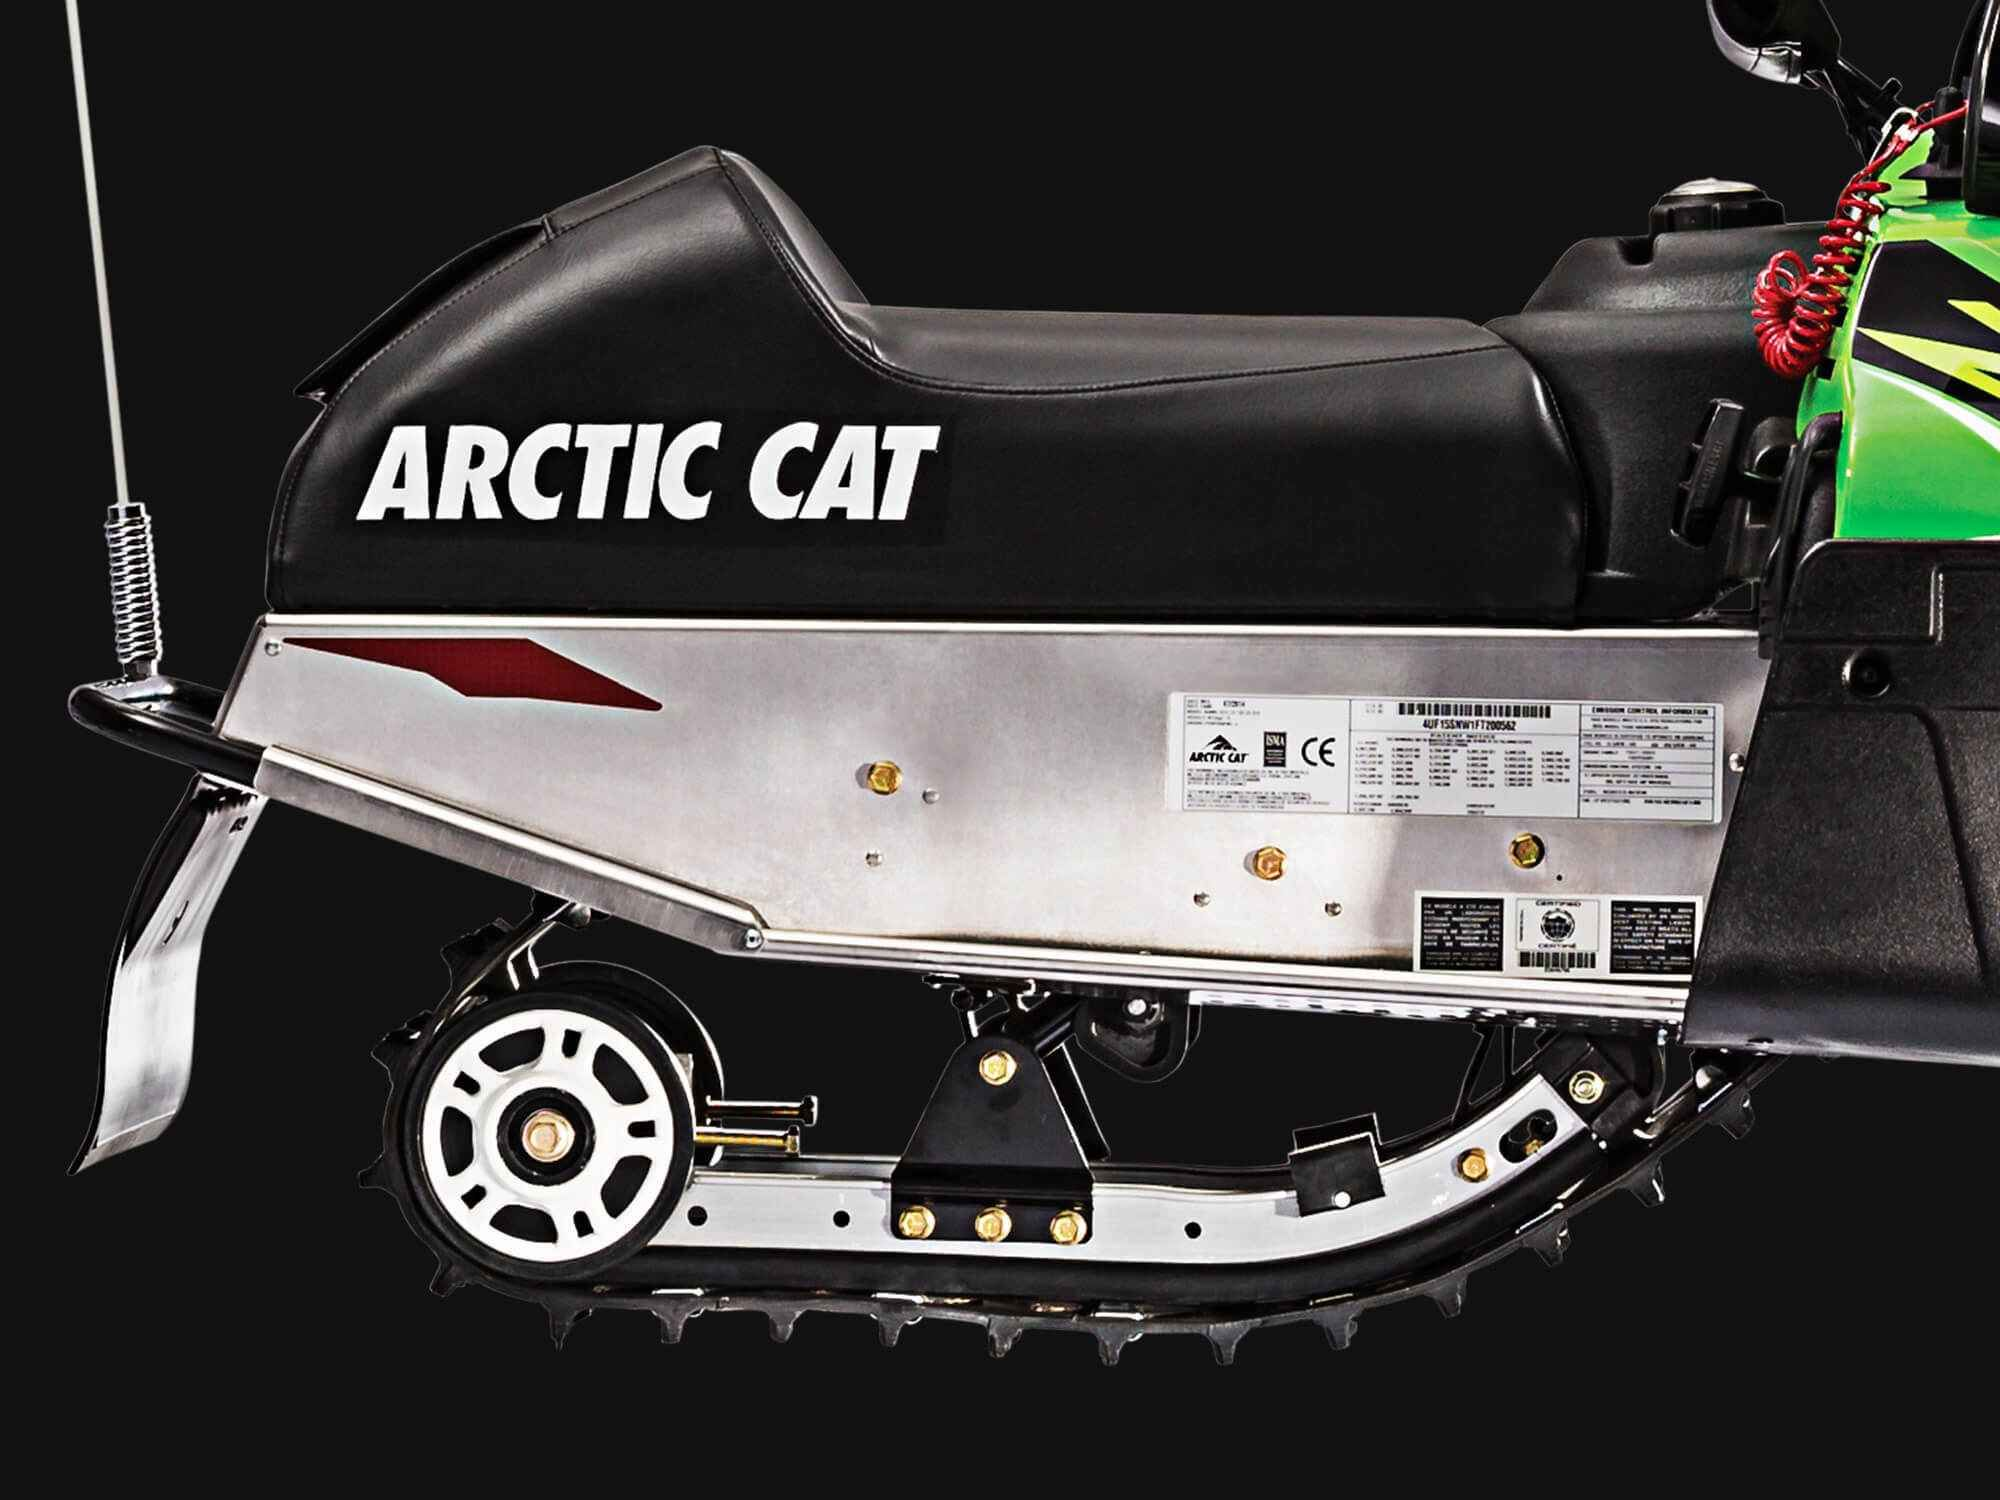 New 2016 Arctic Cat ZR 120 Snowmobile For Sale in